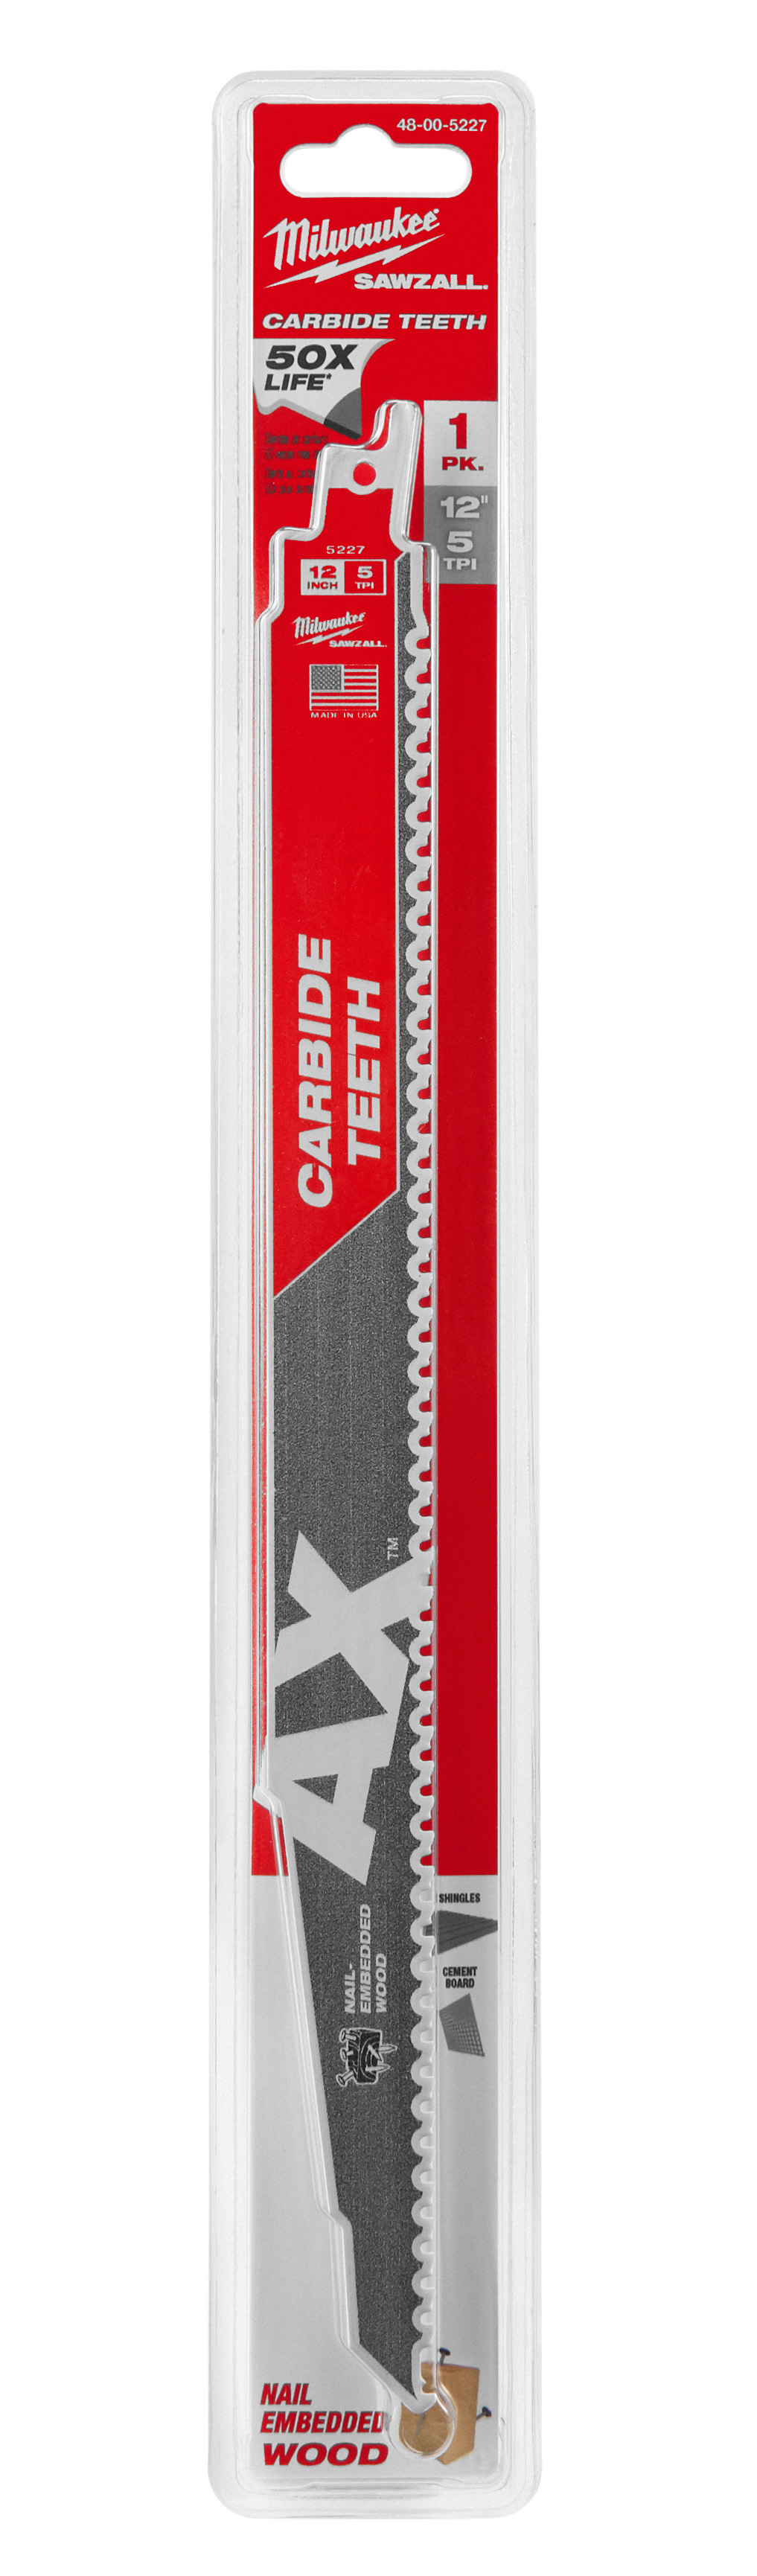 Milwaukee® SAWZALL® AX™ 48-00-5227 Tapered Back Reciprocating Saw Blade, 12 in L, 5 TPI, Carbide Body, Universal/Toothed Edge Tang